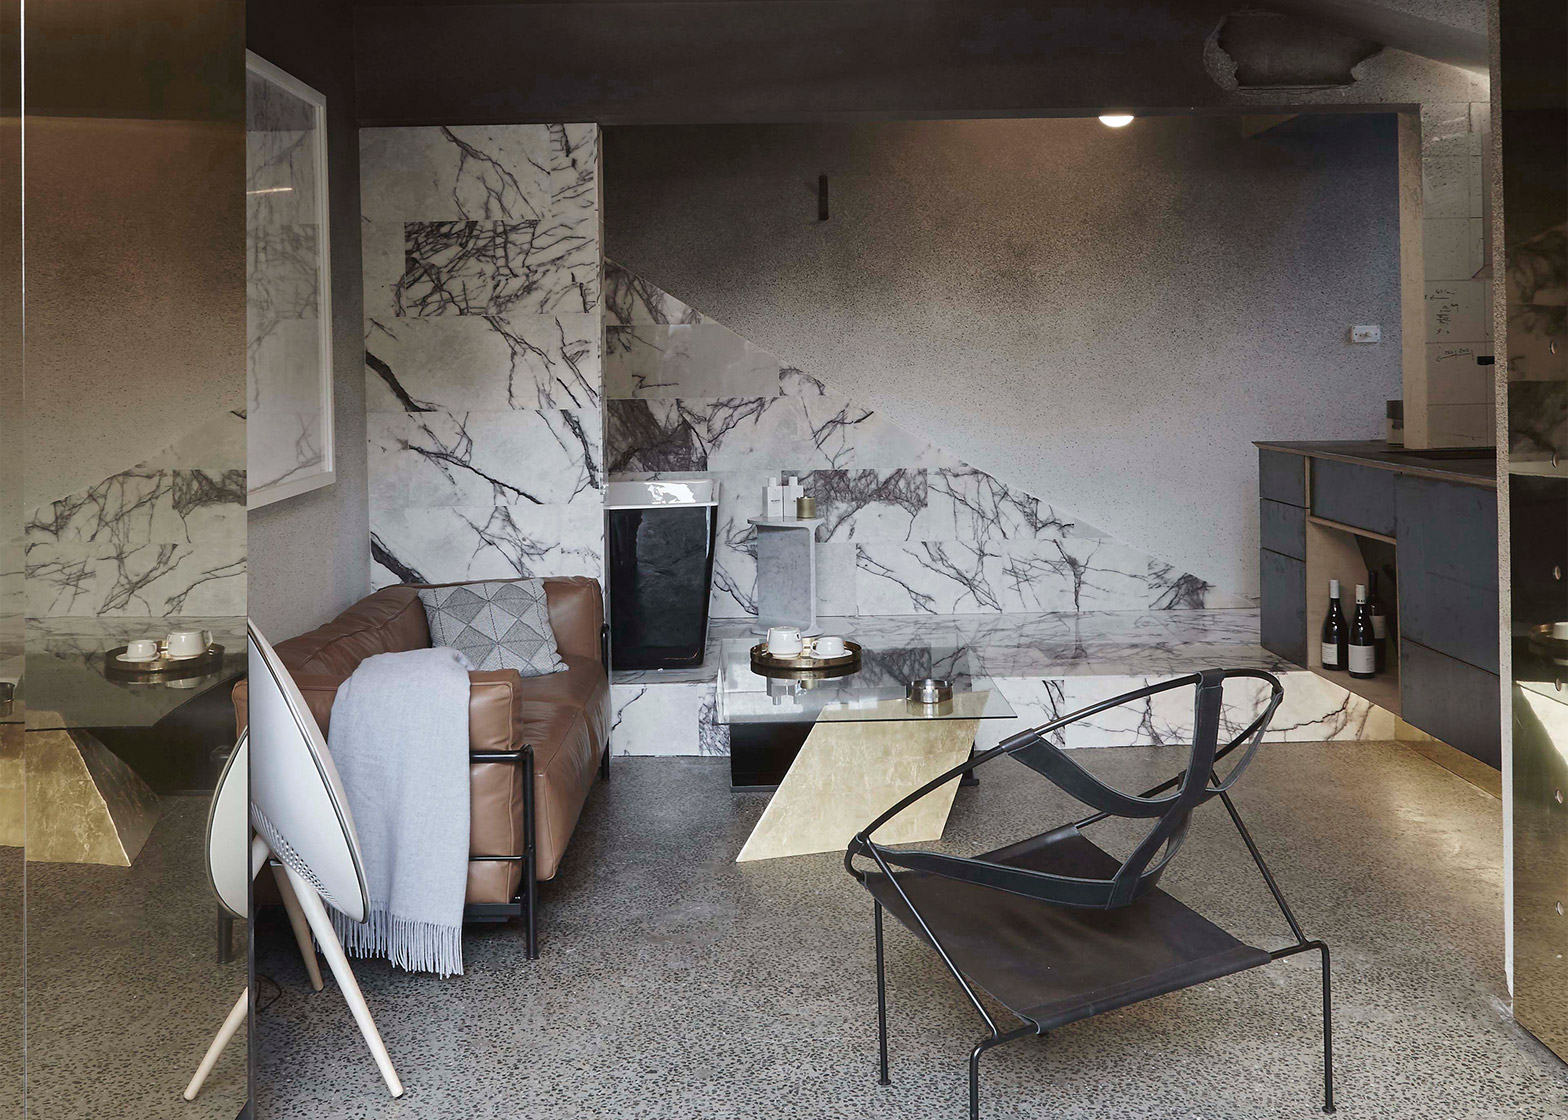 Guests buy furniture inside Microluxe flat by Edwards Moore